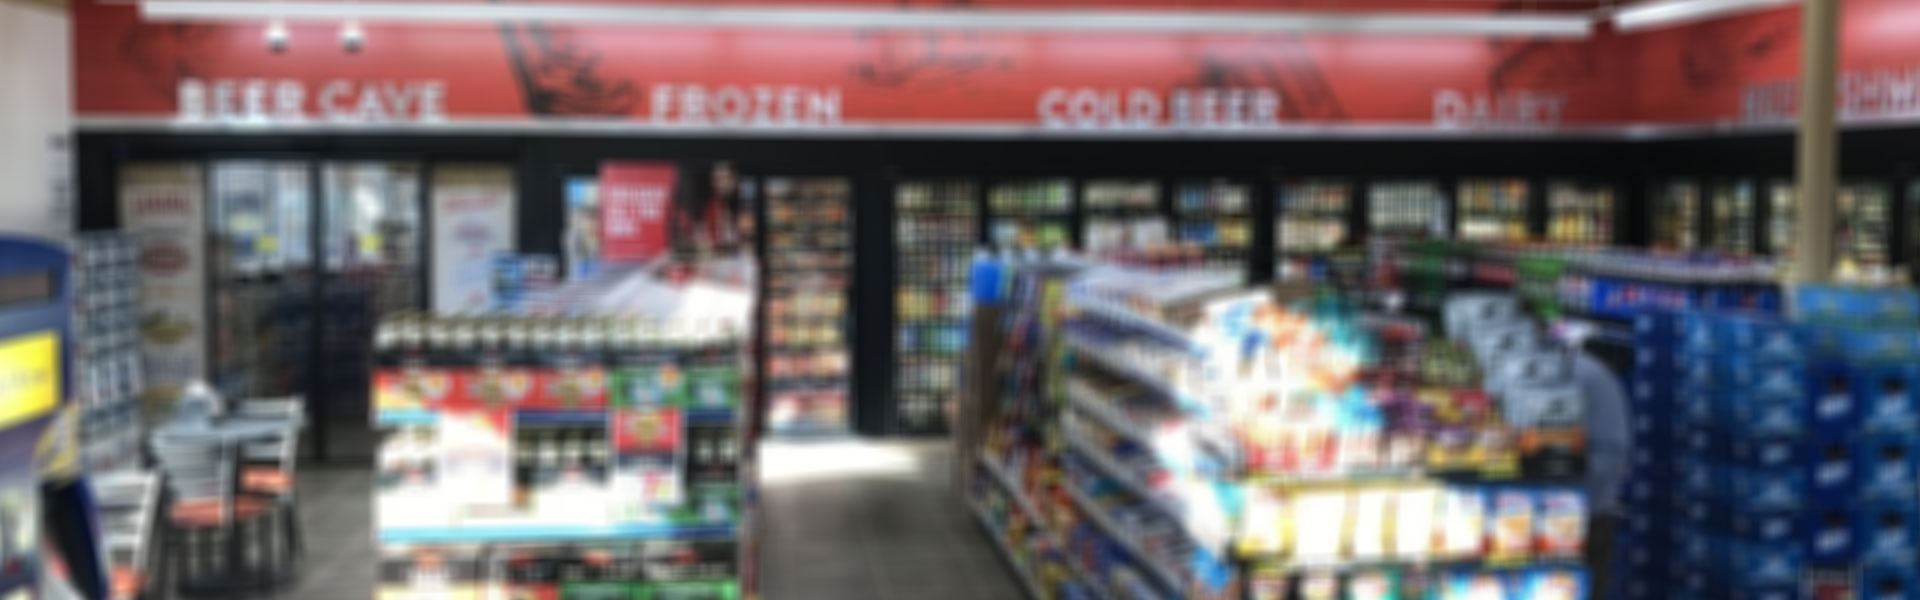 Cliff's Local Market Coolers